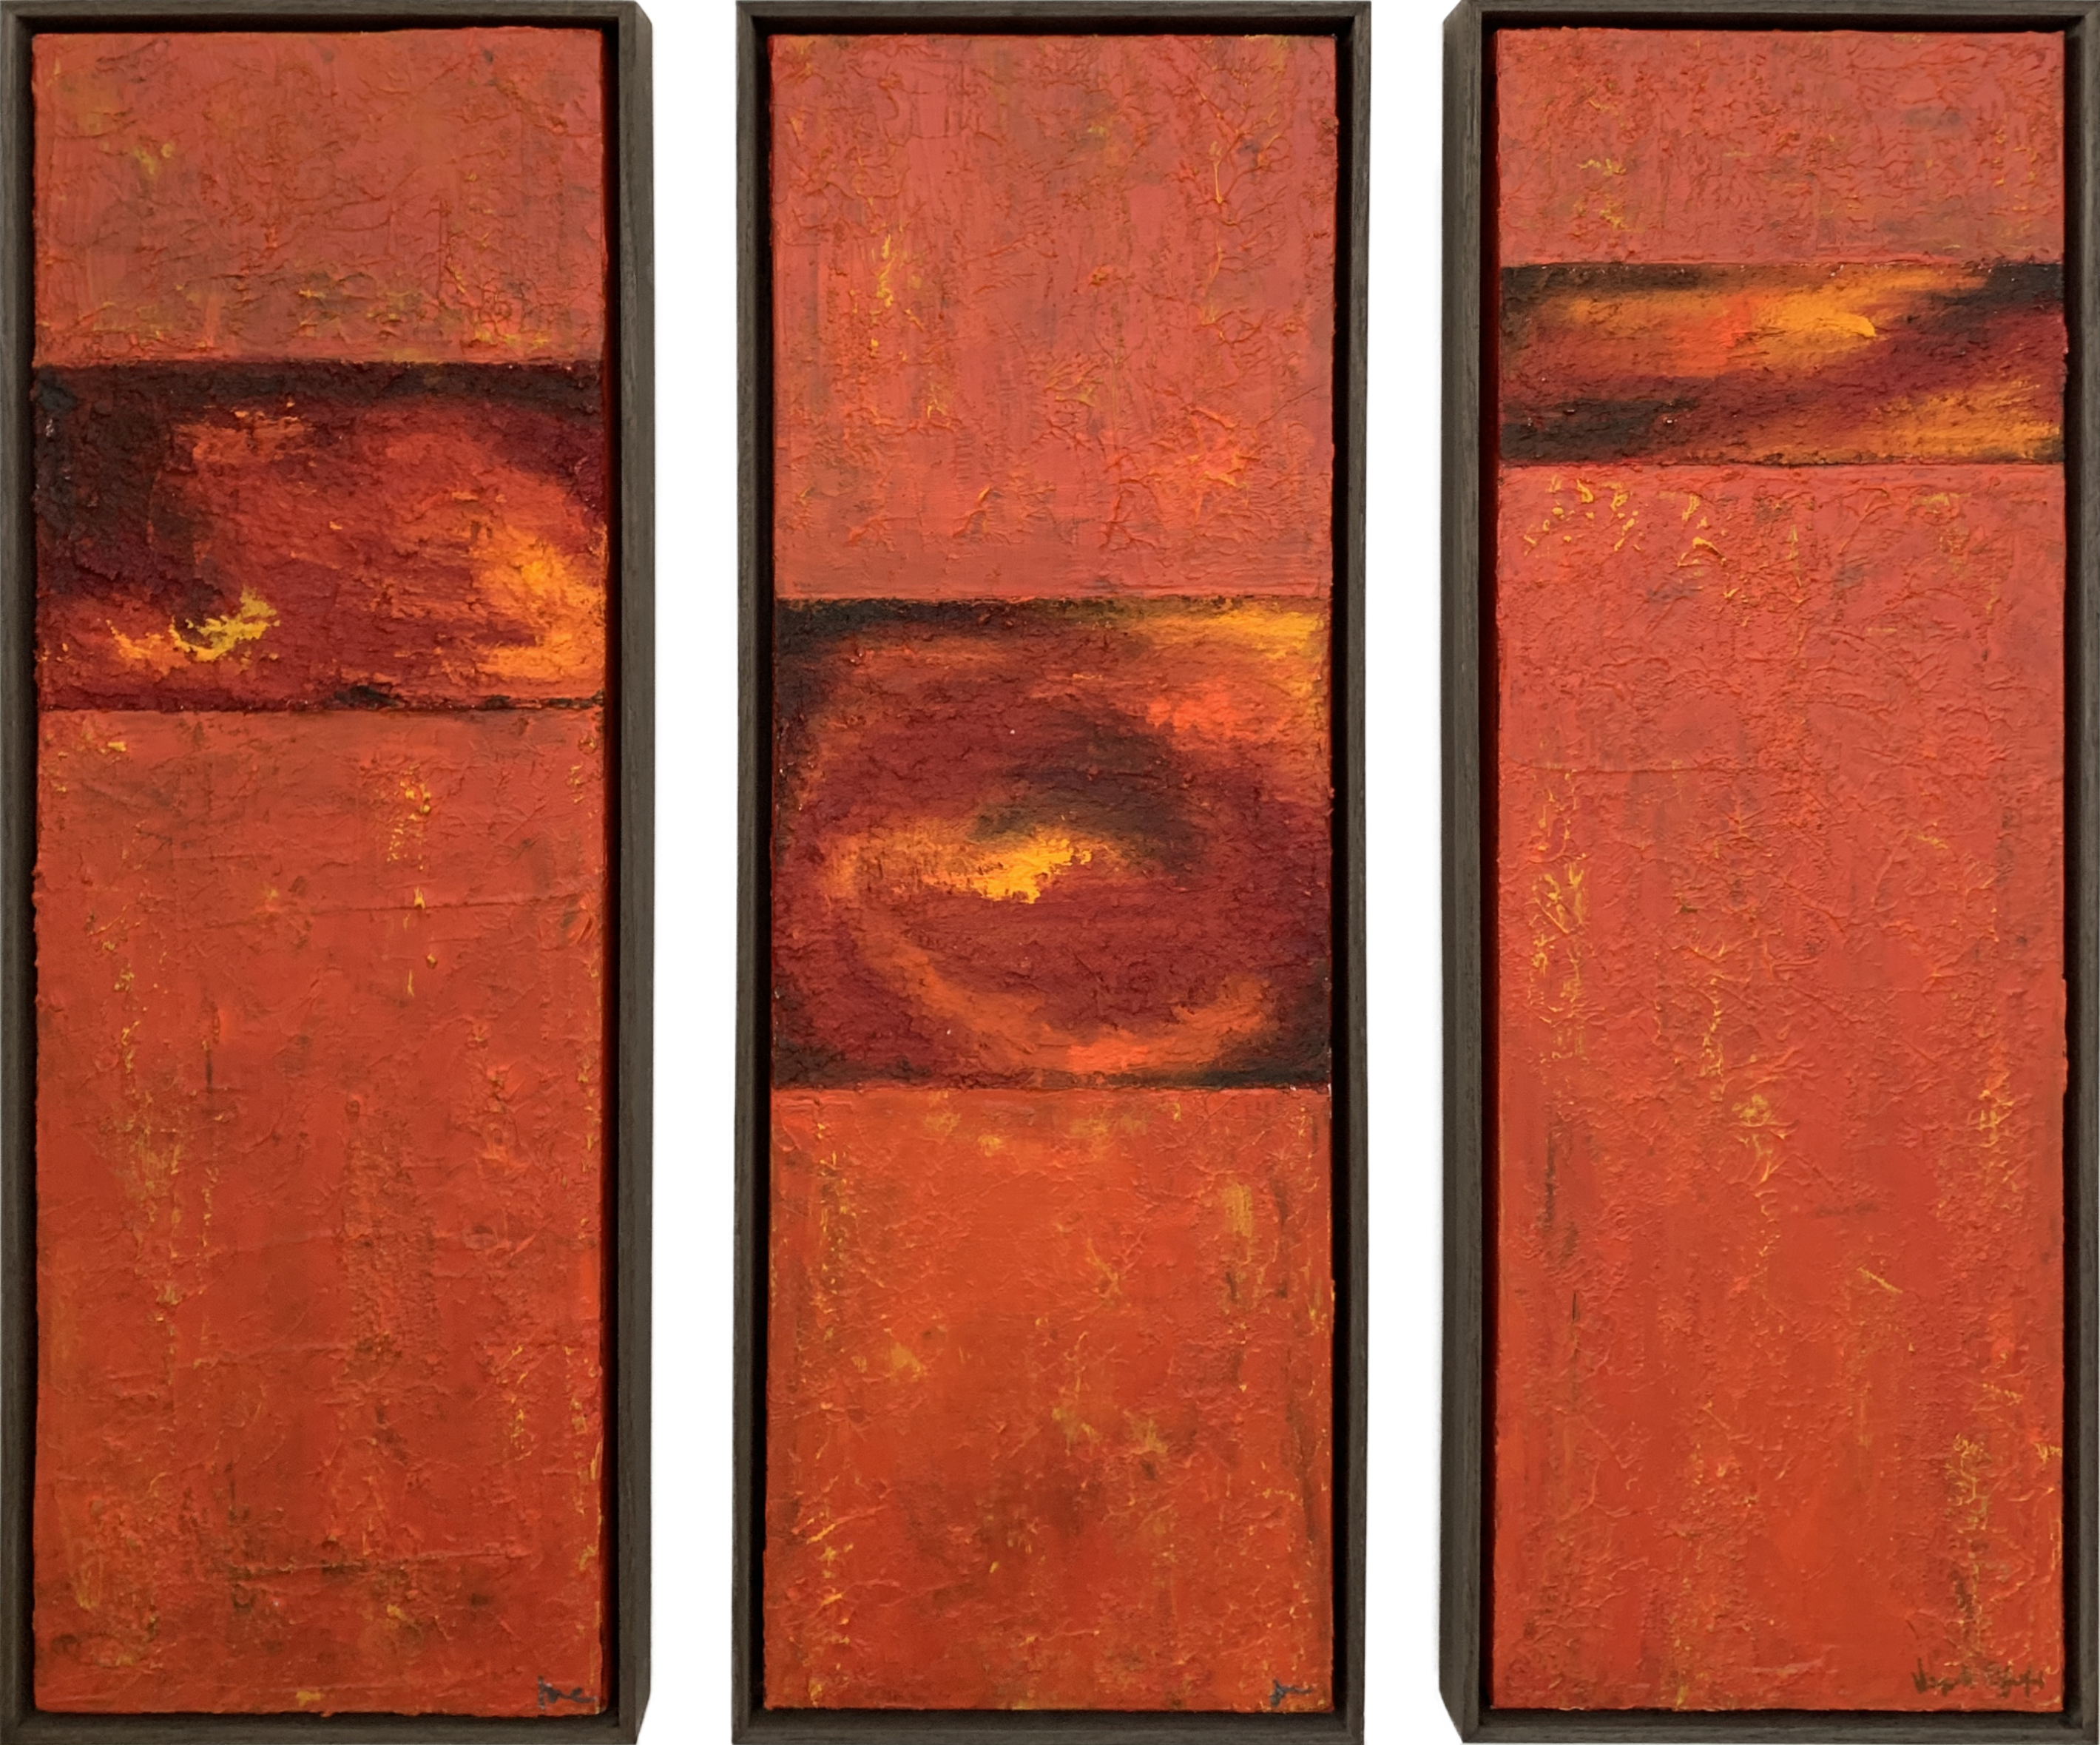 SUNSET TRIPTYCH I